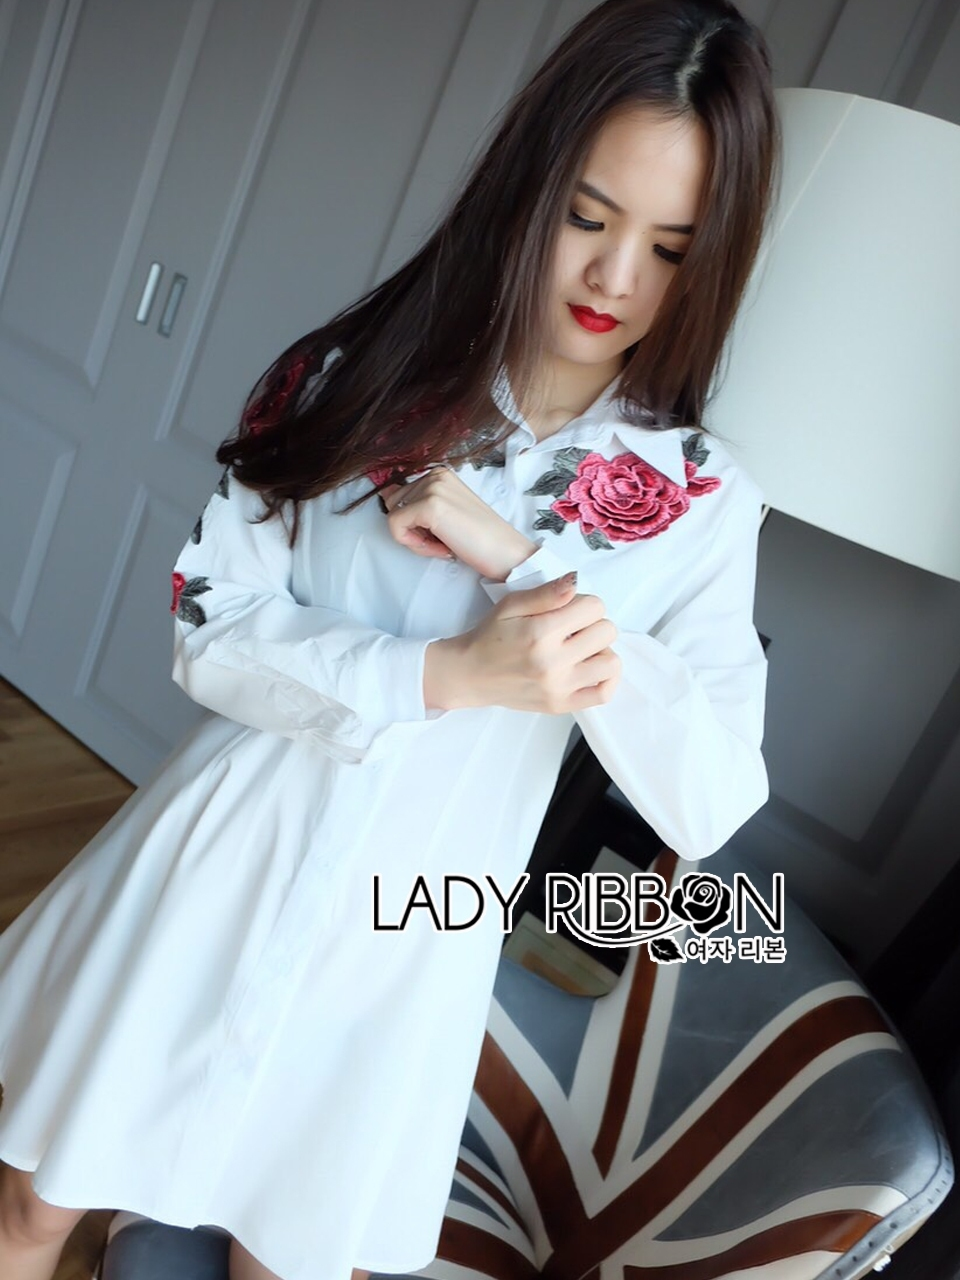 Lady Rachel Sexy Chic Red Roses Embroidered Shirt Dress L206-69B13